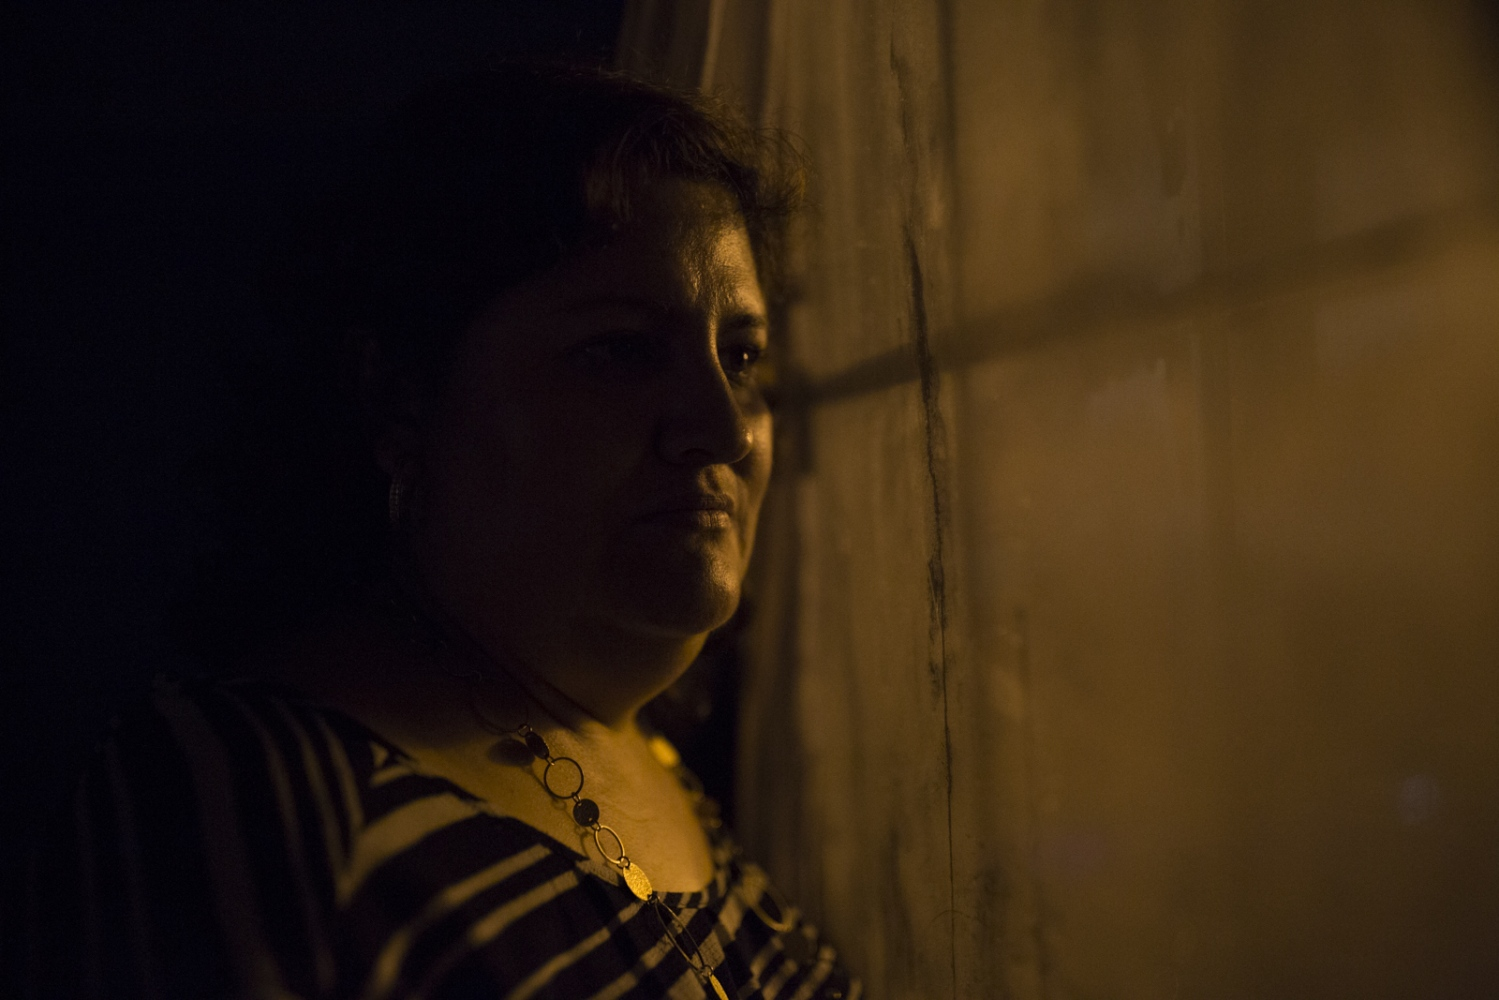 Veronica Castro looks outside through a window from her mobile home in Lothian, MD. Veronica has a temporary work permit that allows her to stay in the country but has to go through immigration check-ups periodically and is always fearing a possible deportation.